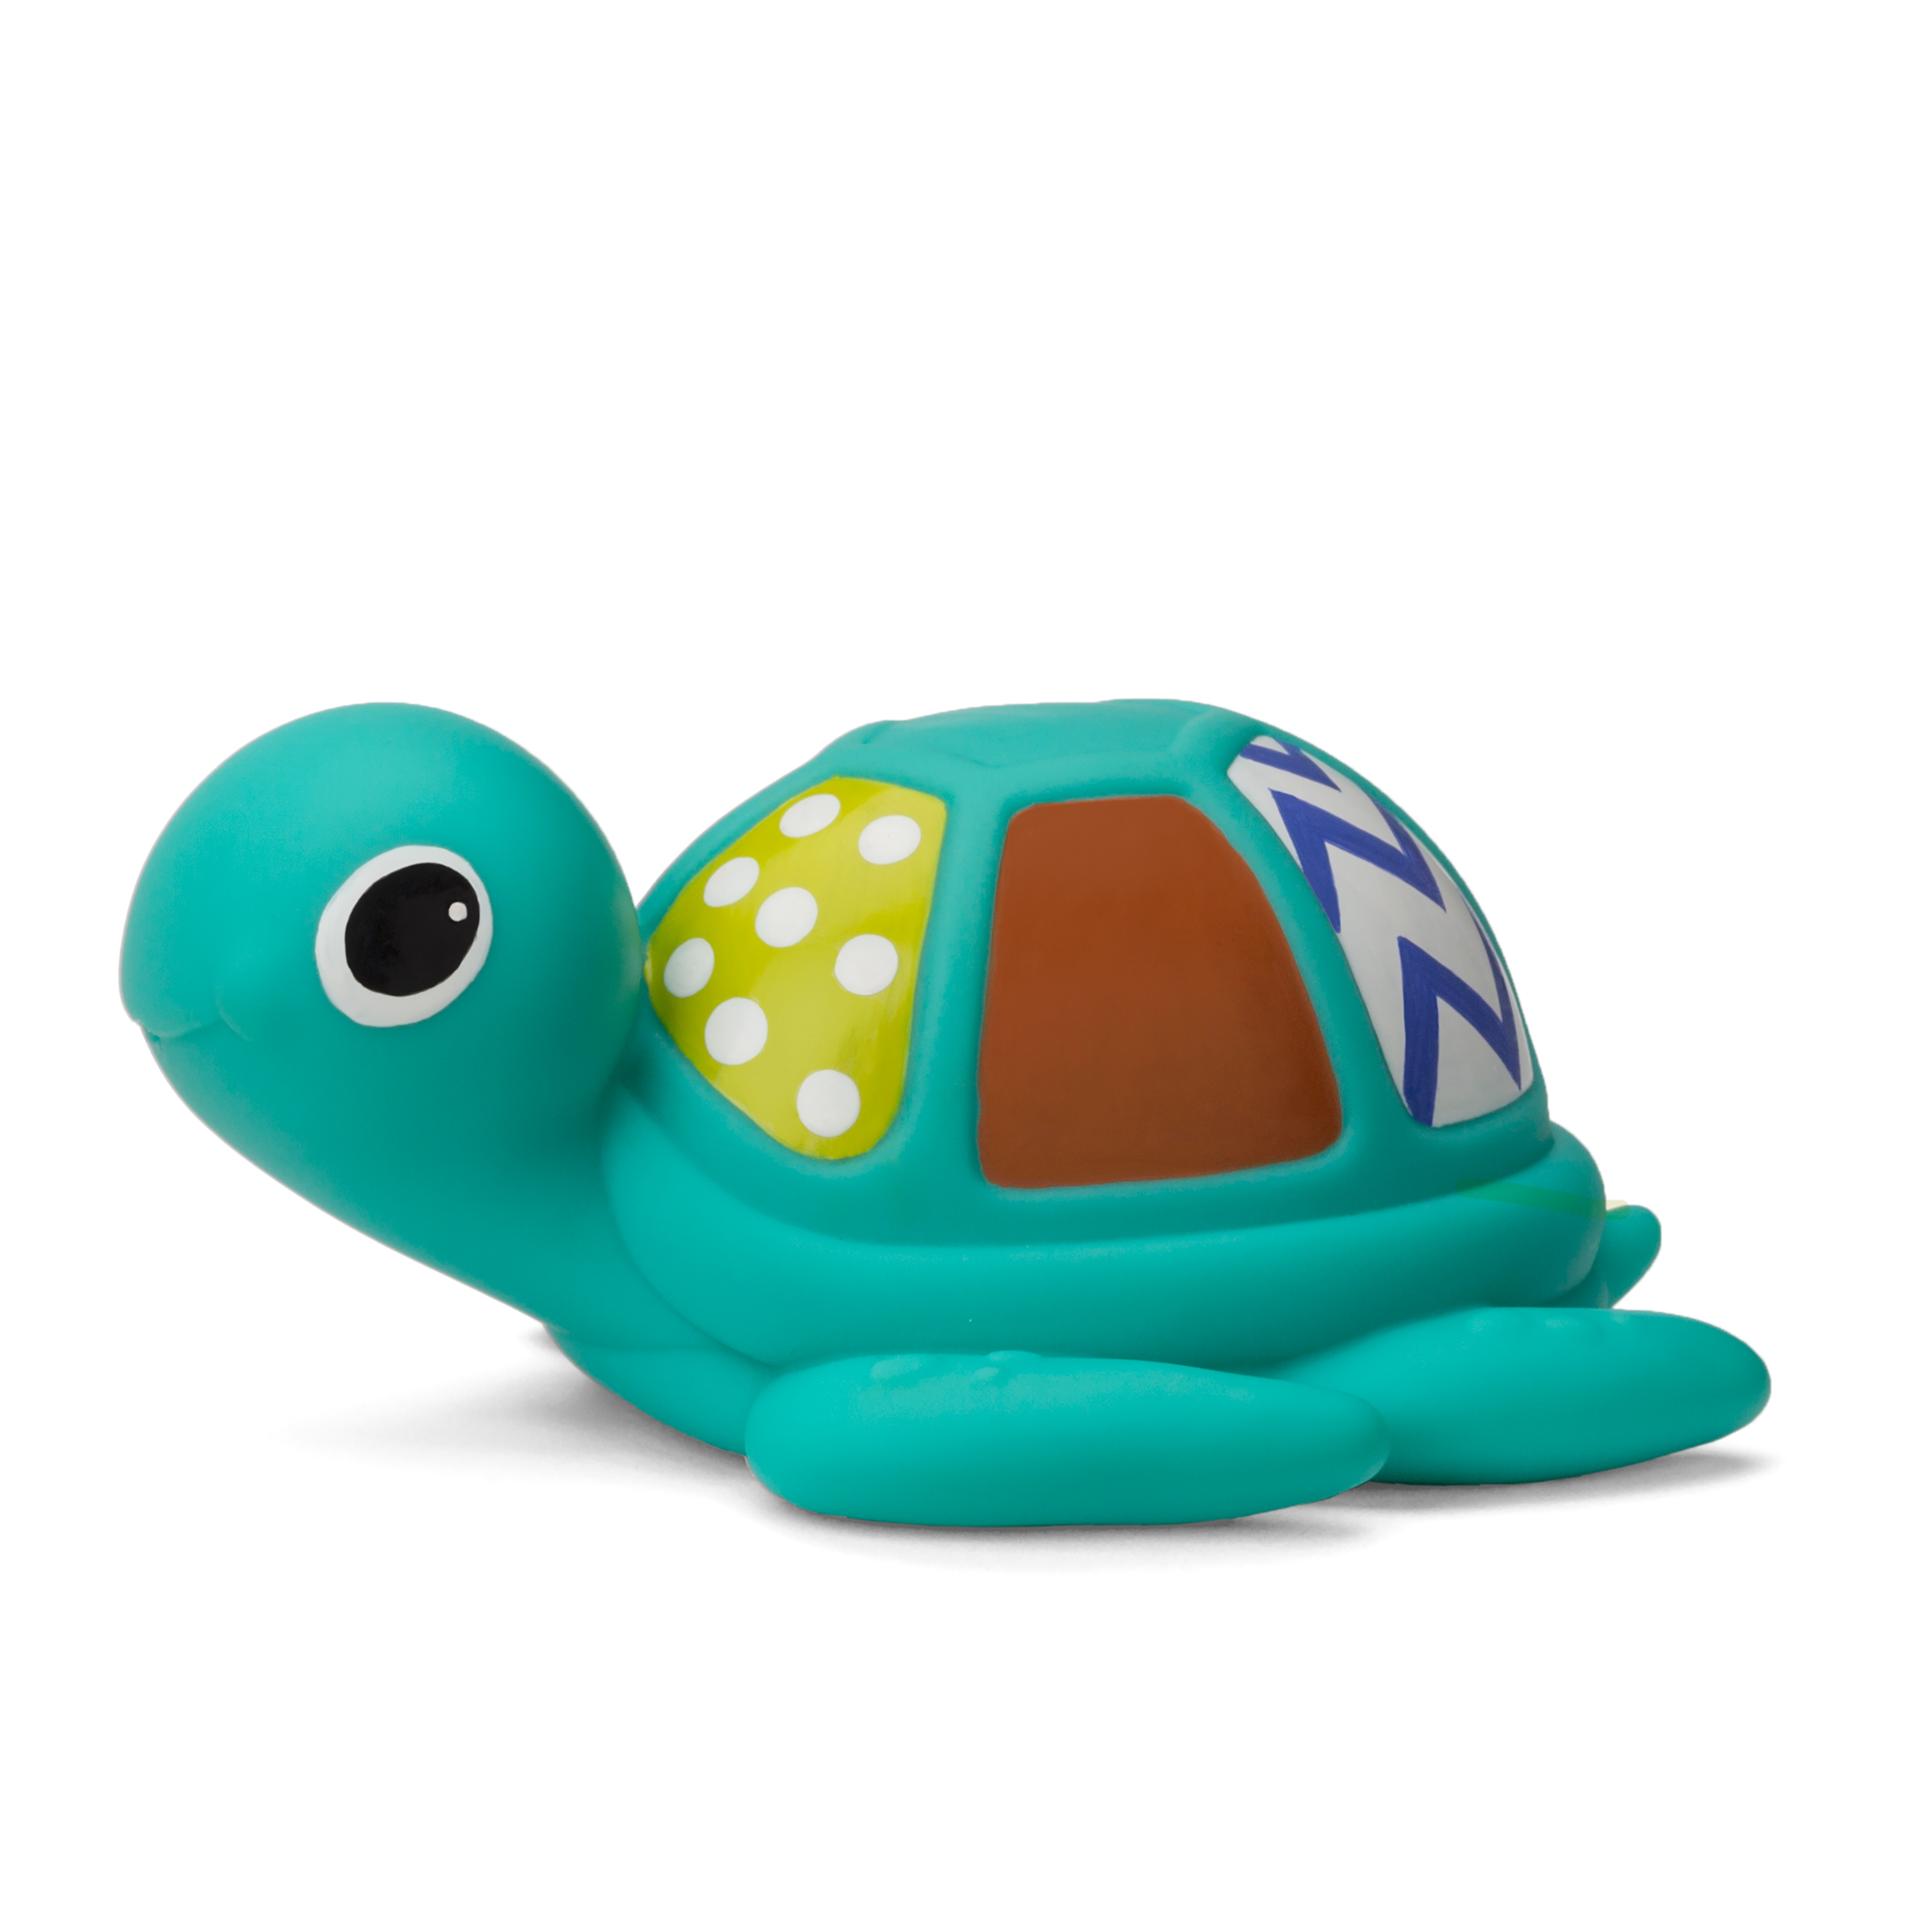 Infantino Squish 'N Squirt Bath Toy, Turtle by Infantino